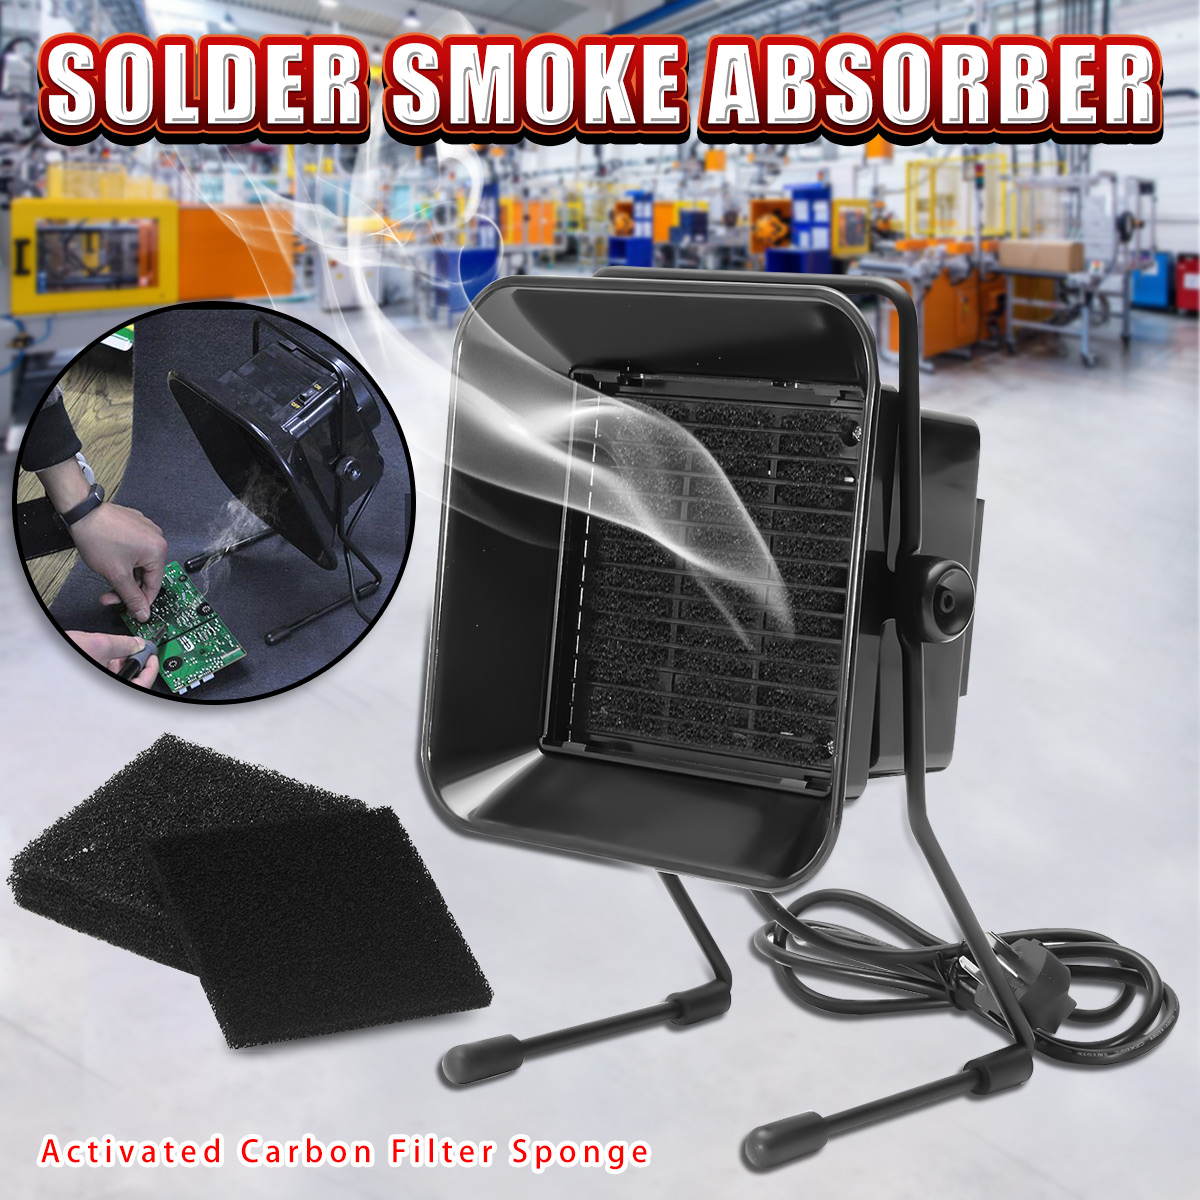 220V 16W Portable Solder Smoke Absorber ESD Fume Extractor for Soldering Iron Work Soldering Smoking Fan with Filter Sponge цена